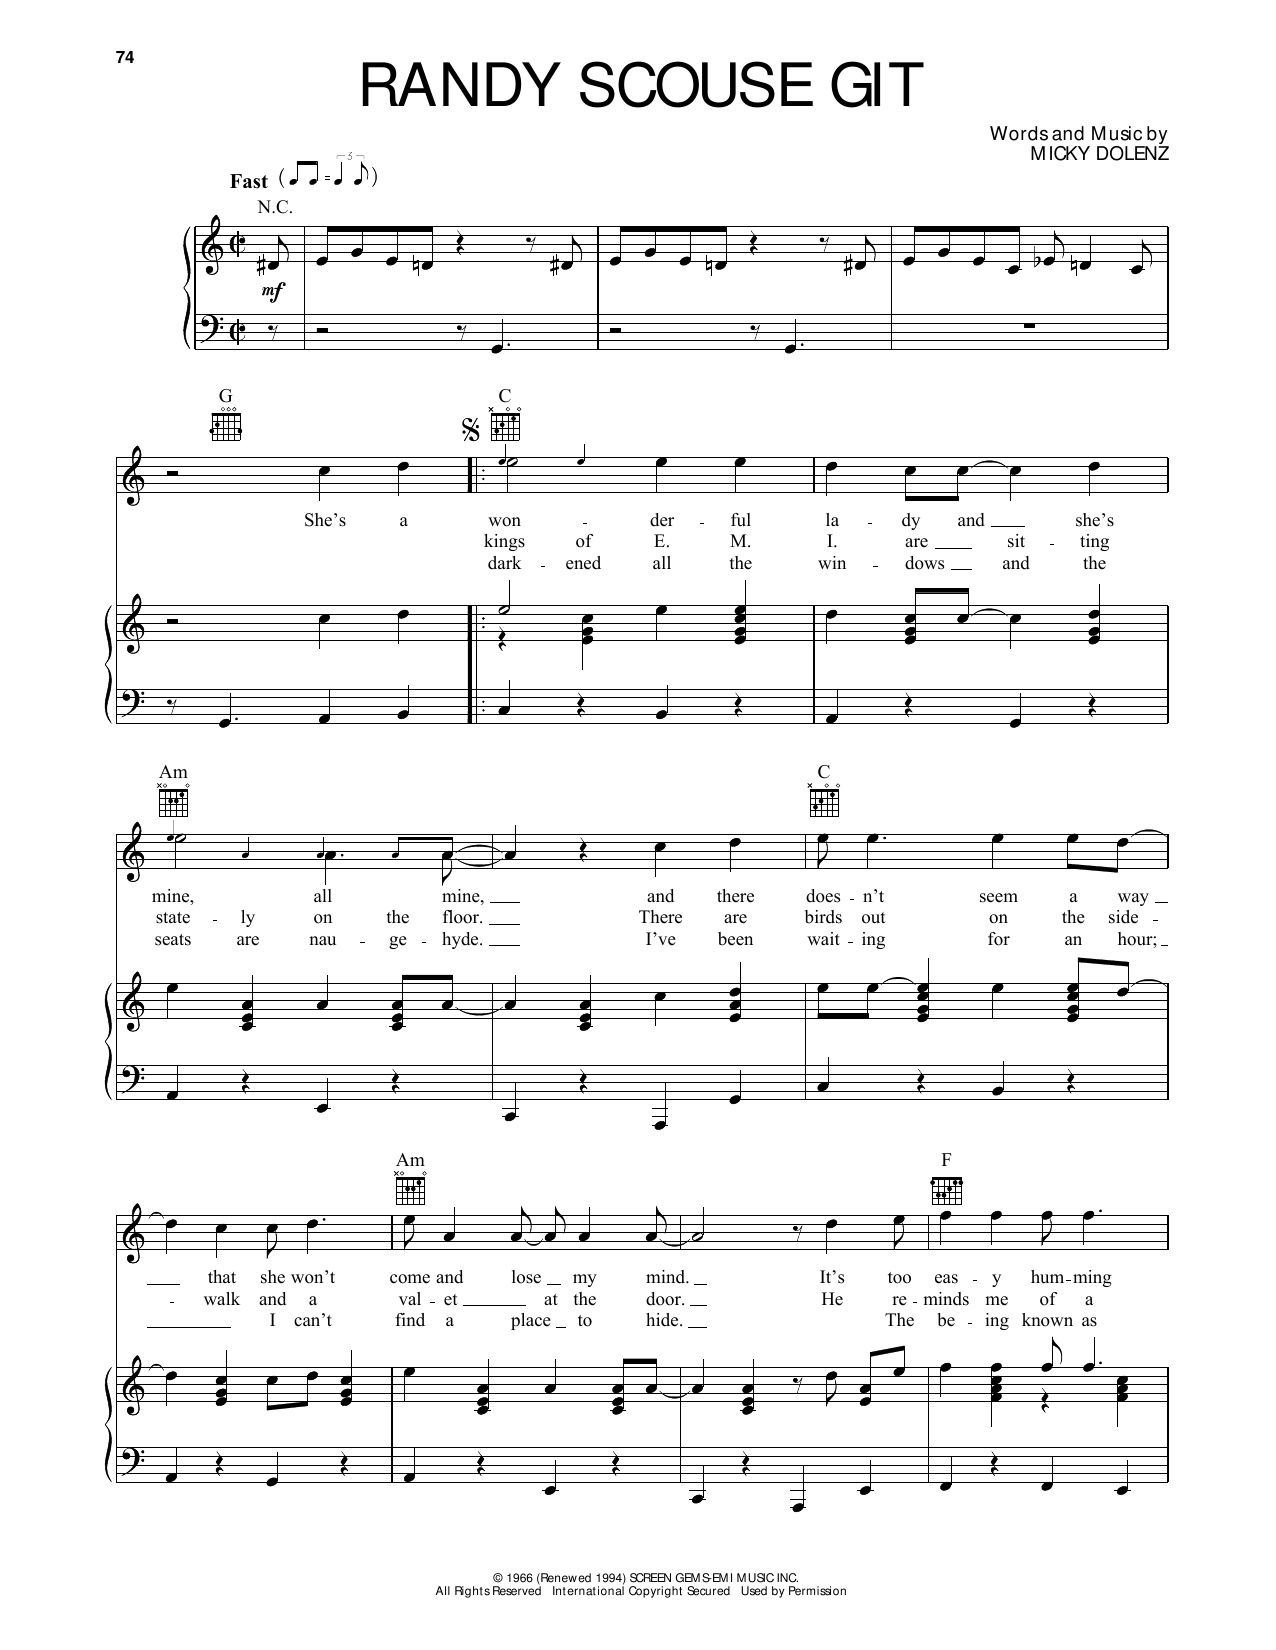 The Monkees Randy Scouse Git sheet music notes and chords. Download Printable PDF.